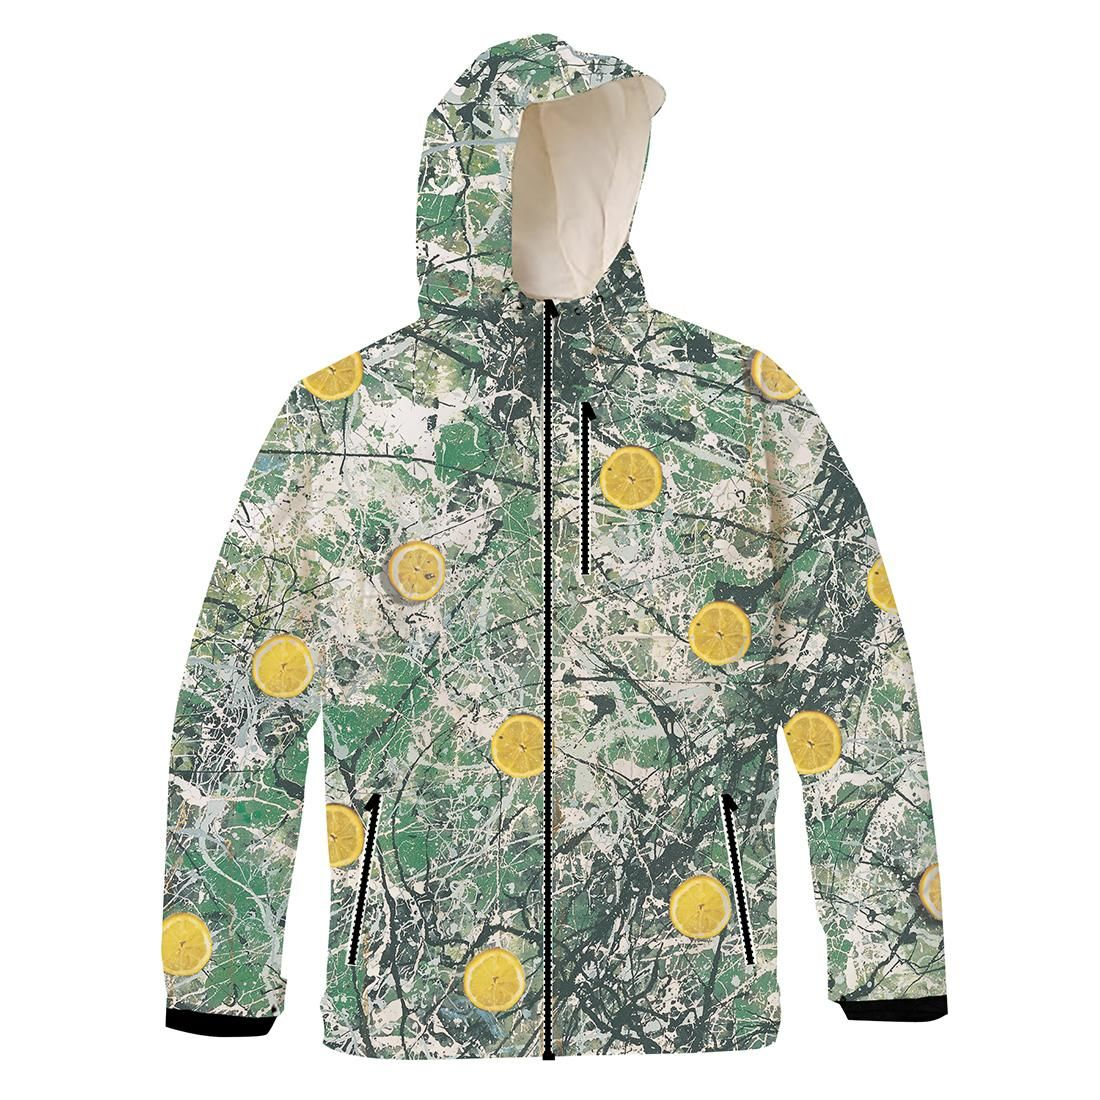 Stone Roses Lemon Jacket